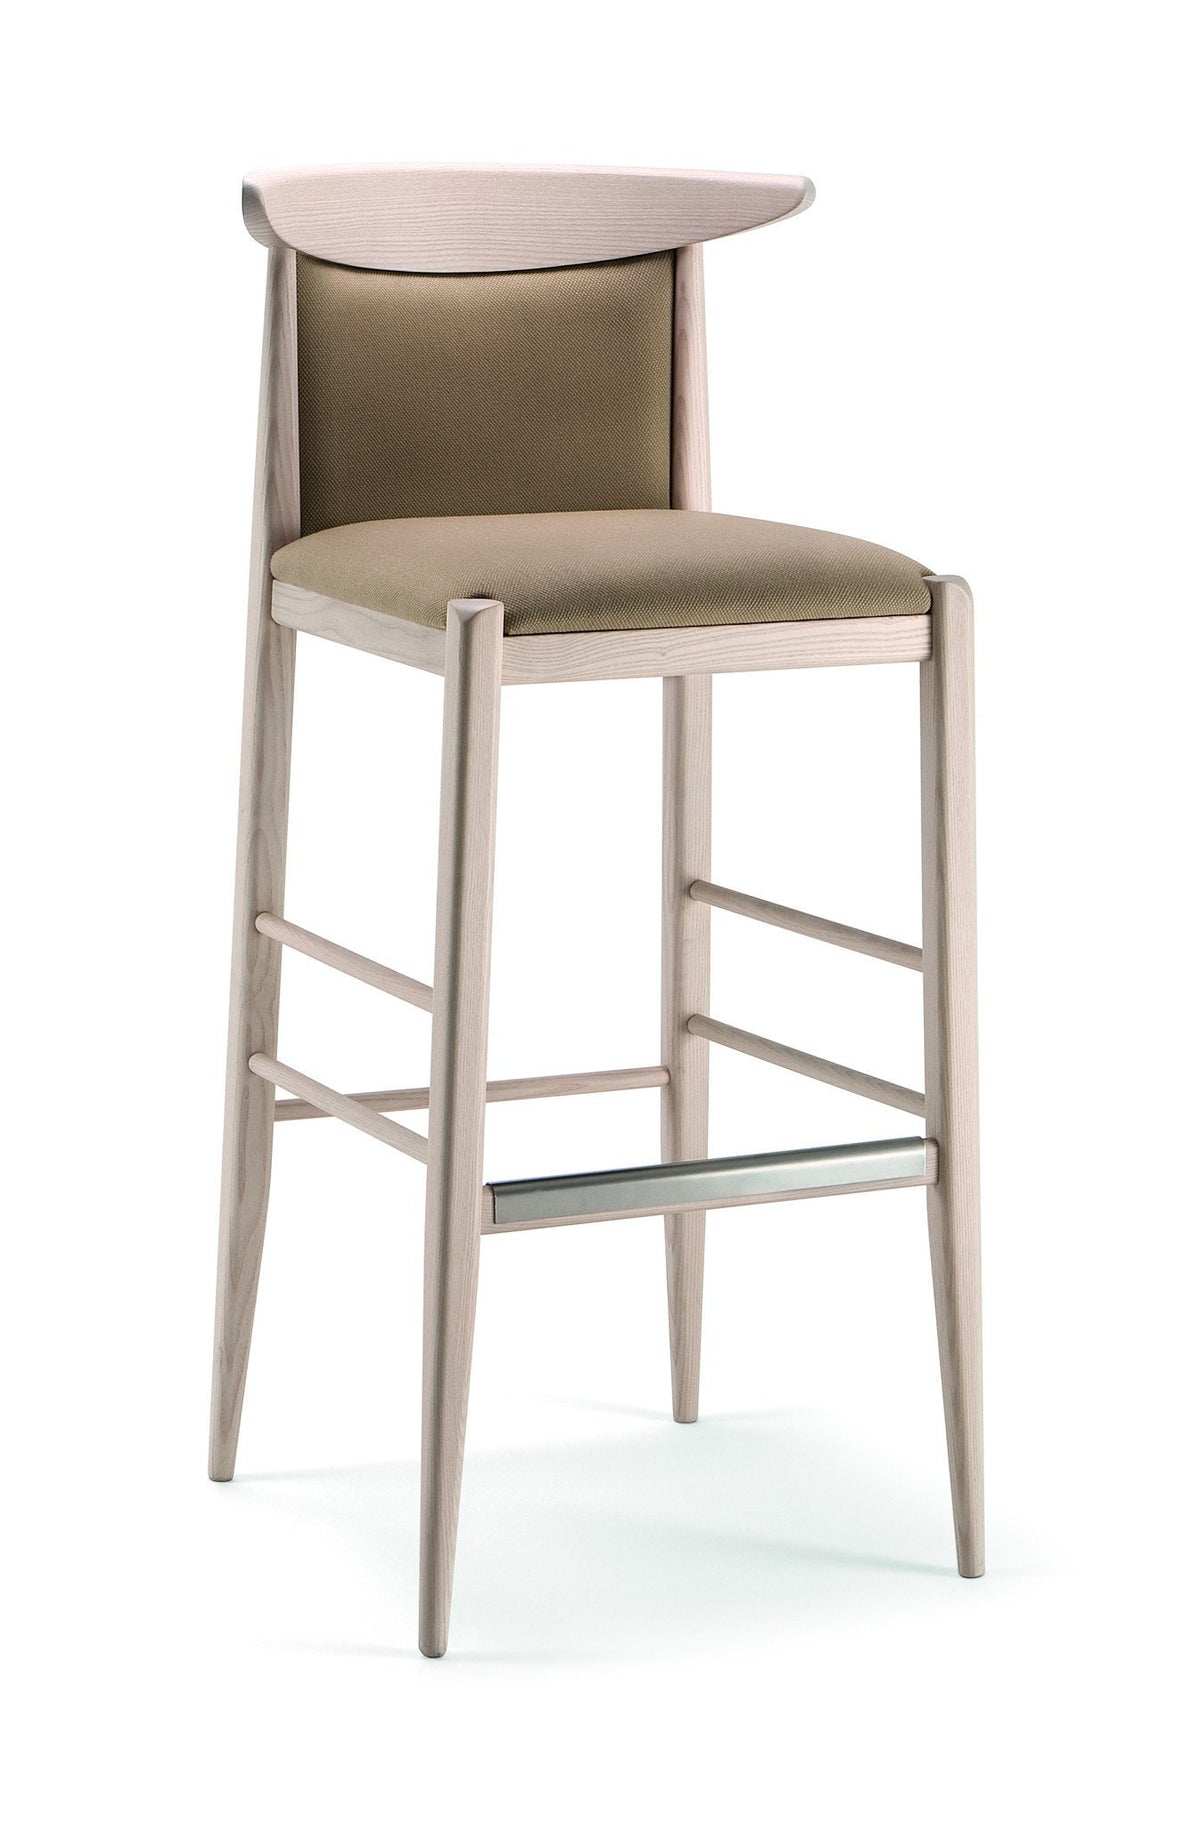 X-Silla High Stool-Xedra-Contract Furniture Store